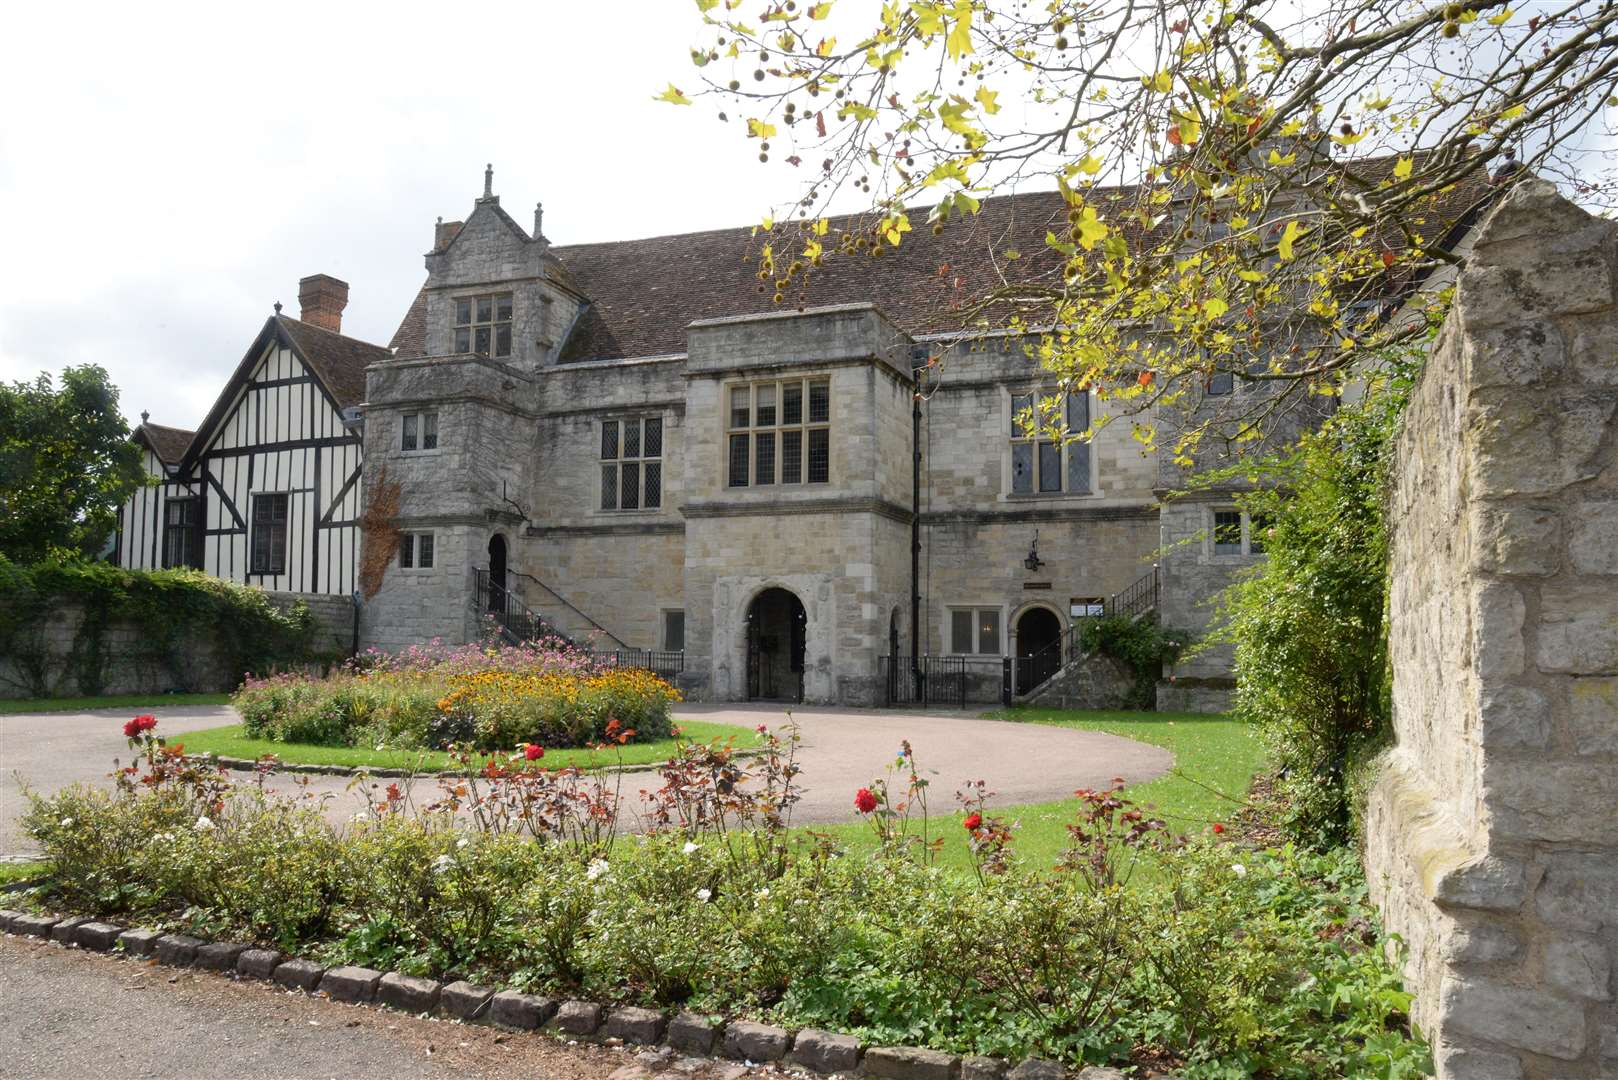 The Archbishops Palace, where the inquest was heard